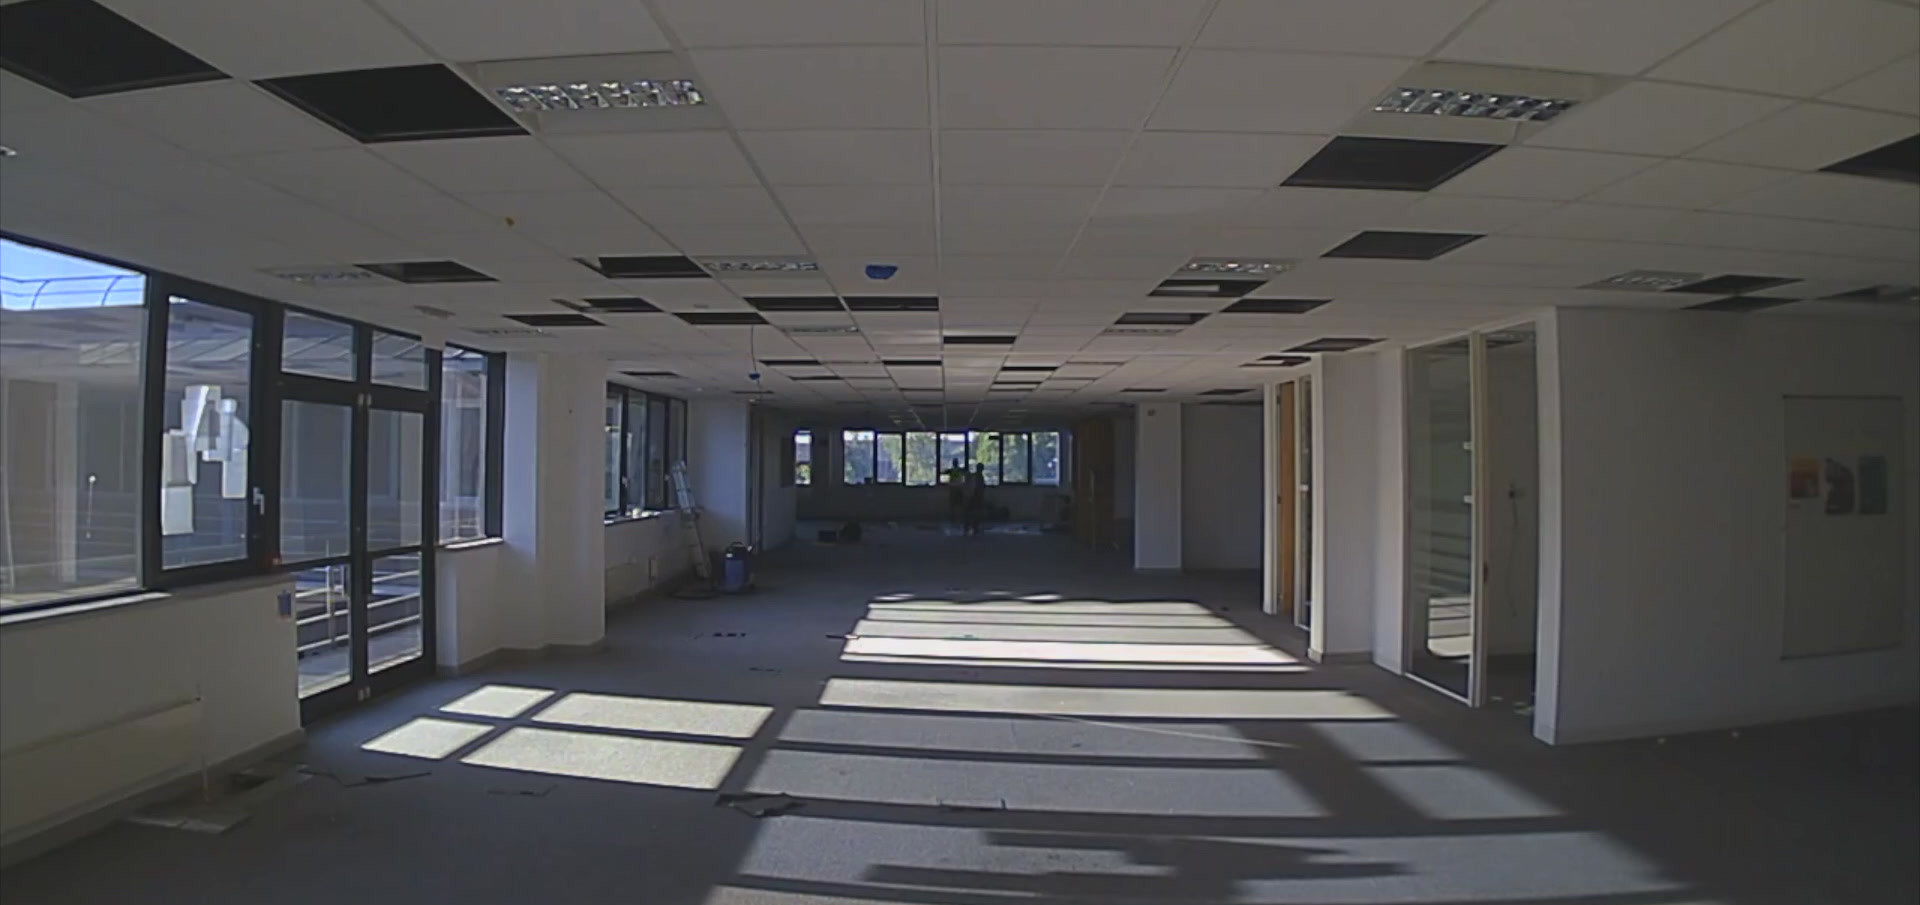 Floor & ceiling removal: Time-lapse video